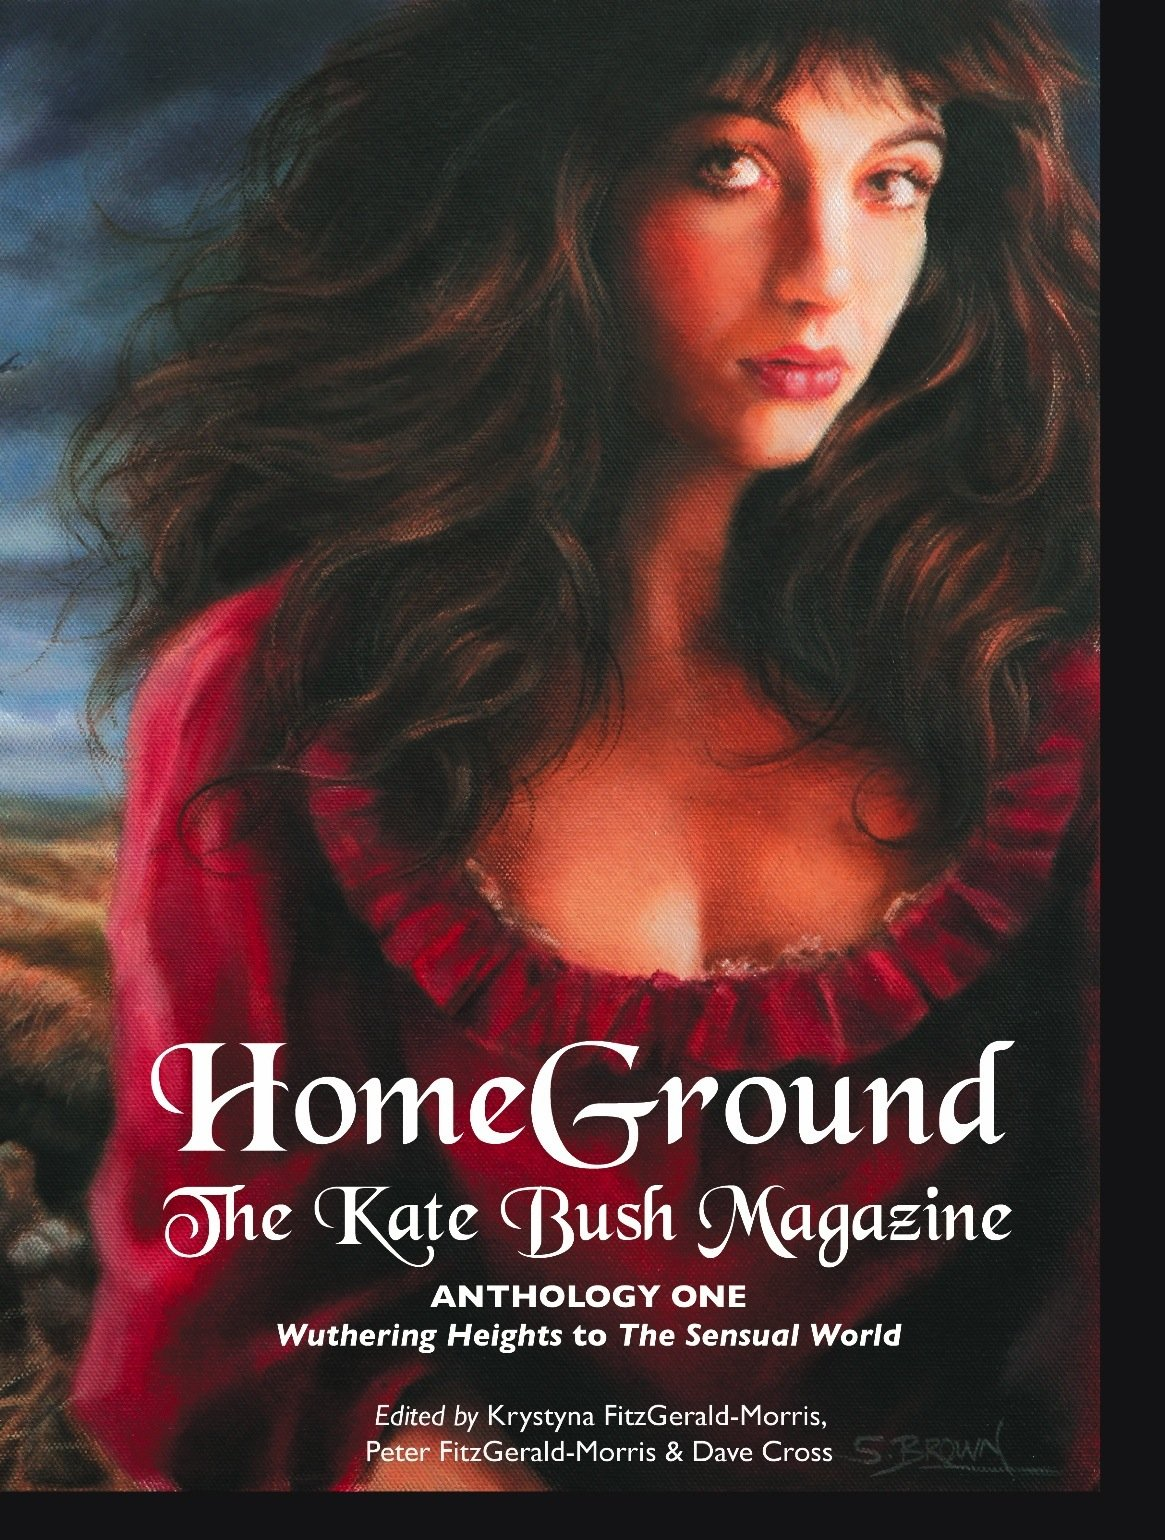 Kate Bush ISBN 1861714432 Vol 1 Paperback Cover